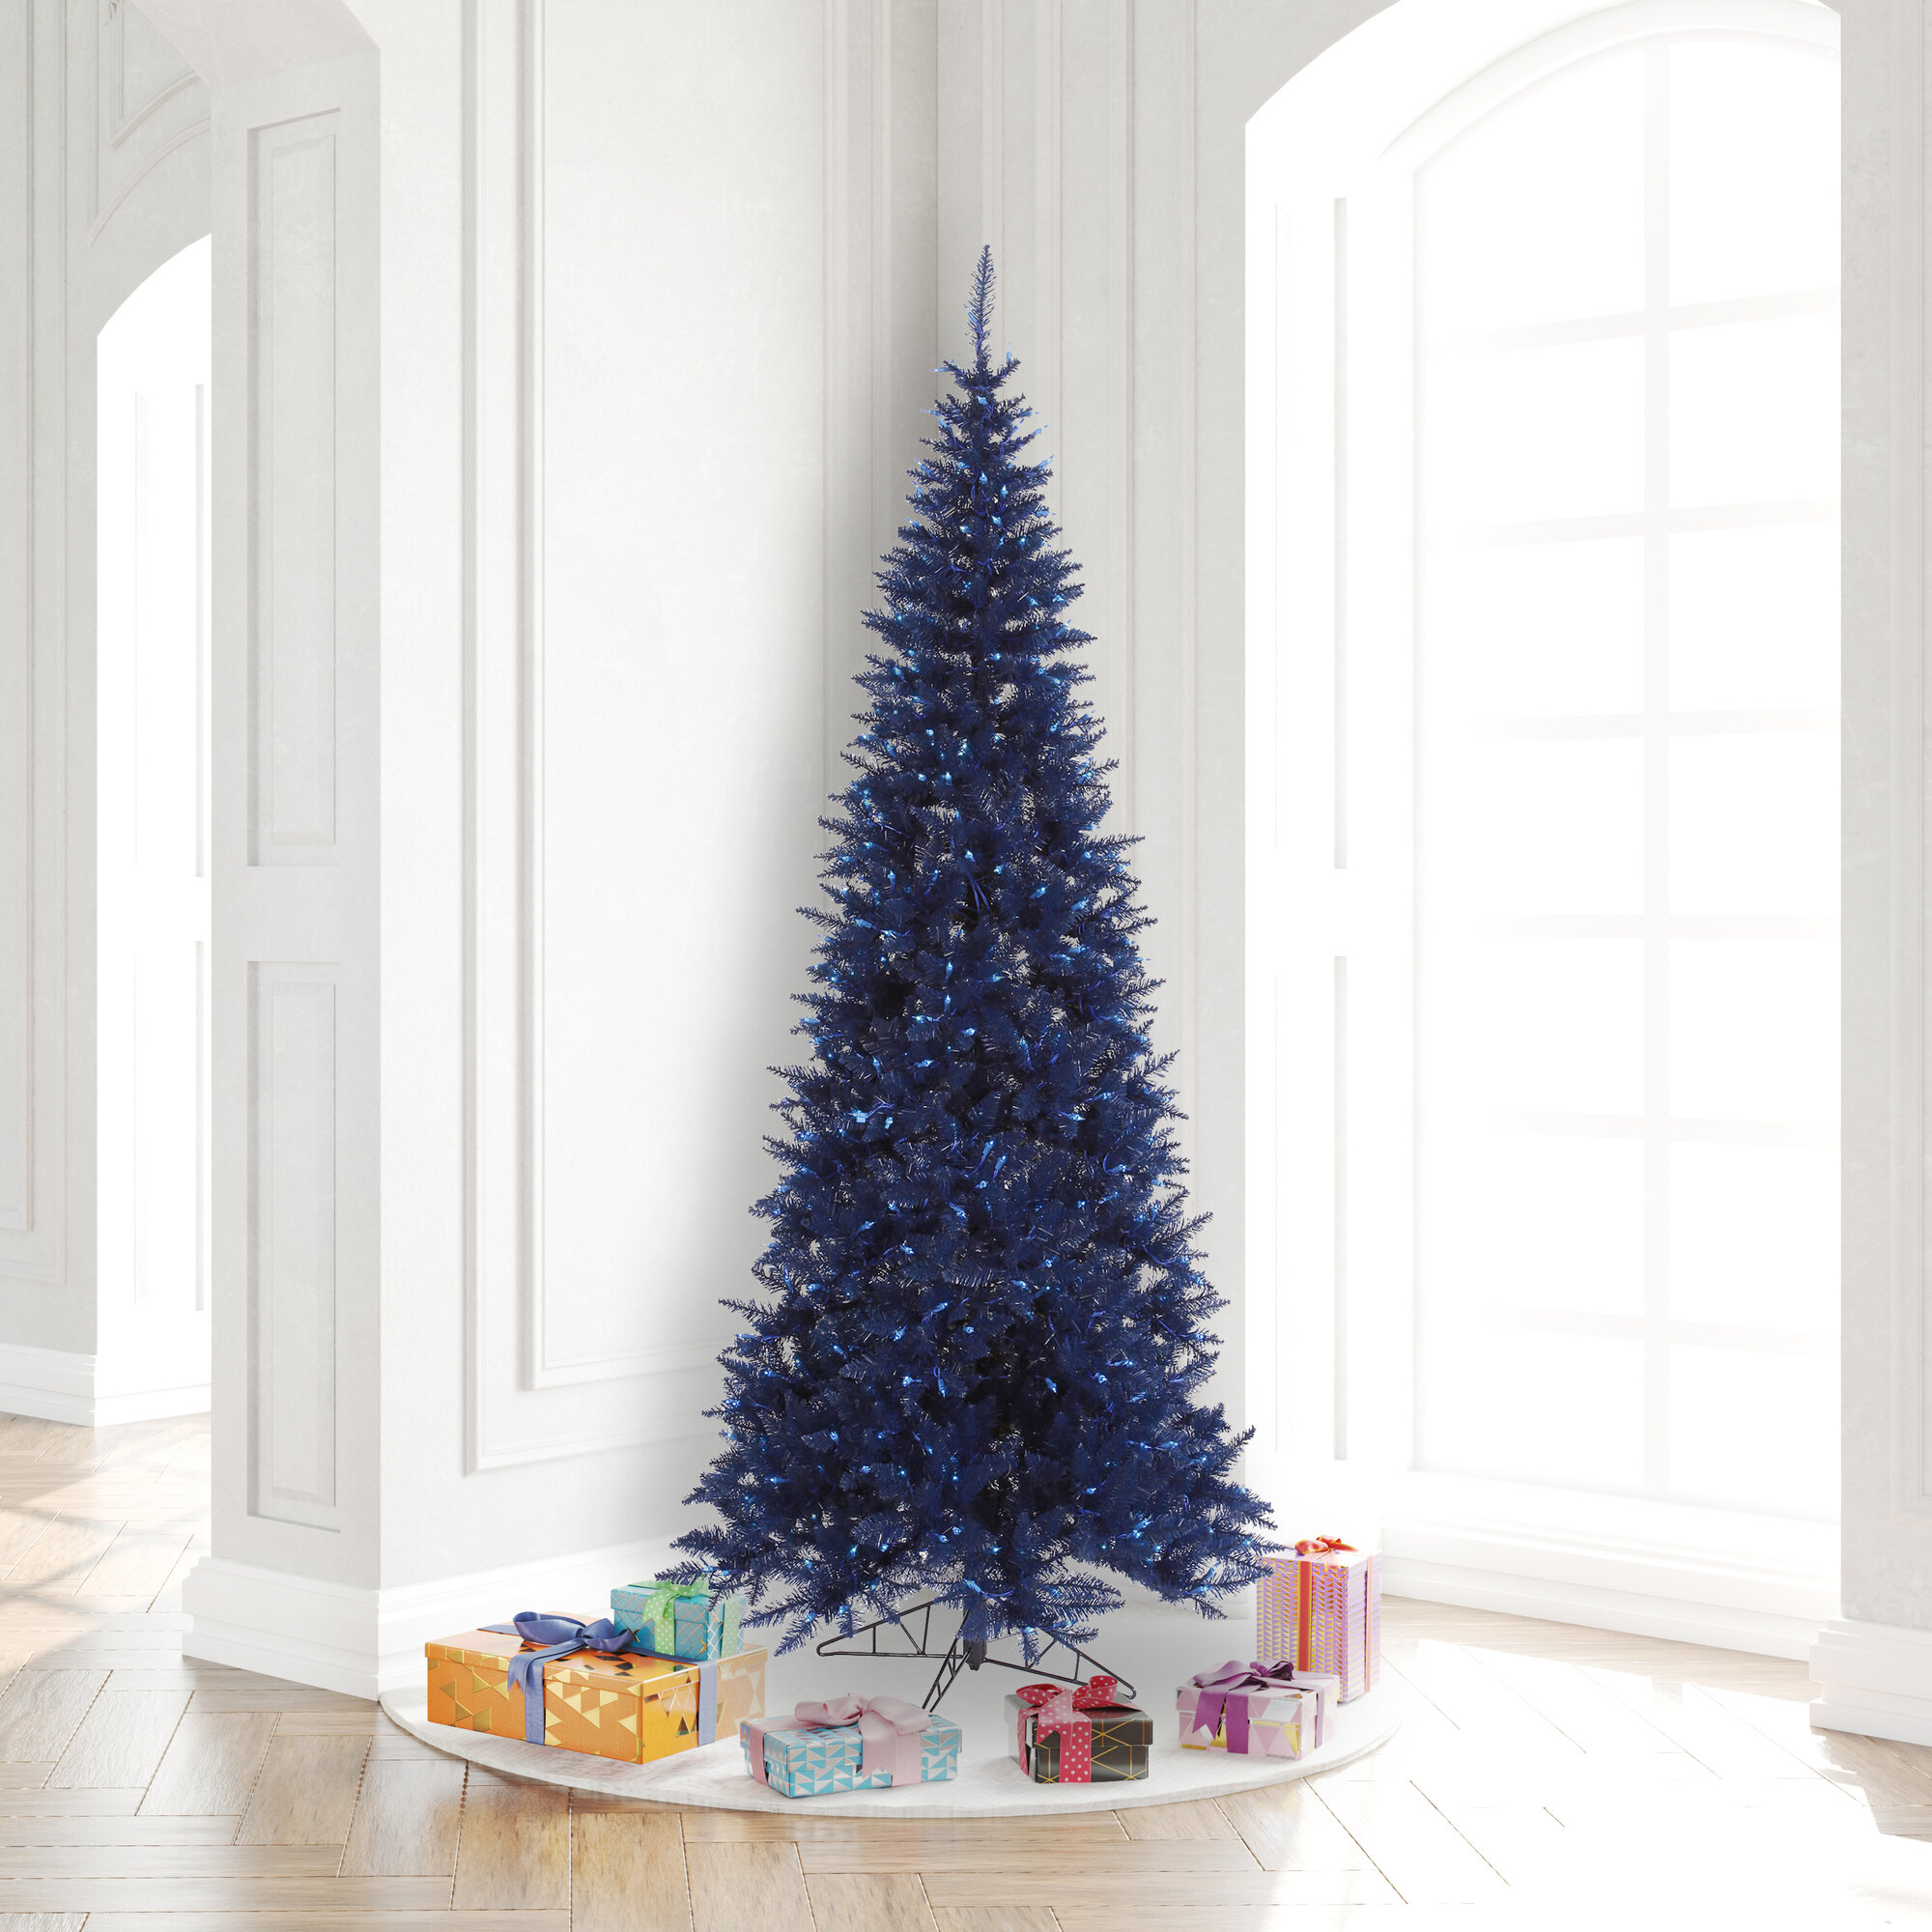 Millwood Pines 7 5 Navy Blue Fir Artificial Christmas Tree With 500 Led Blue Lights With Stand Wayfair